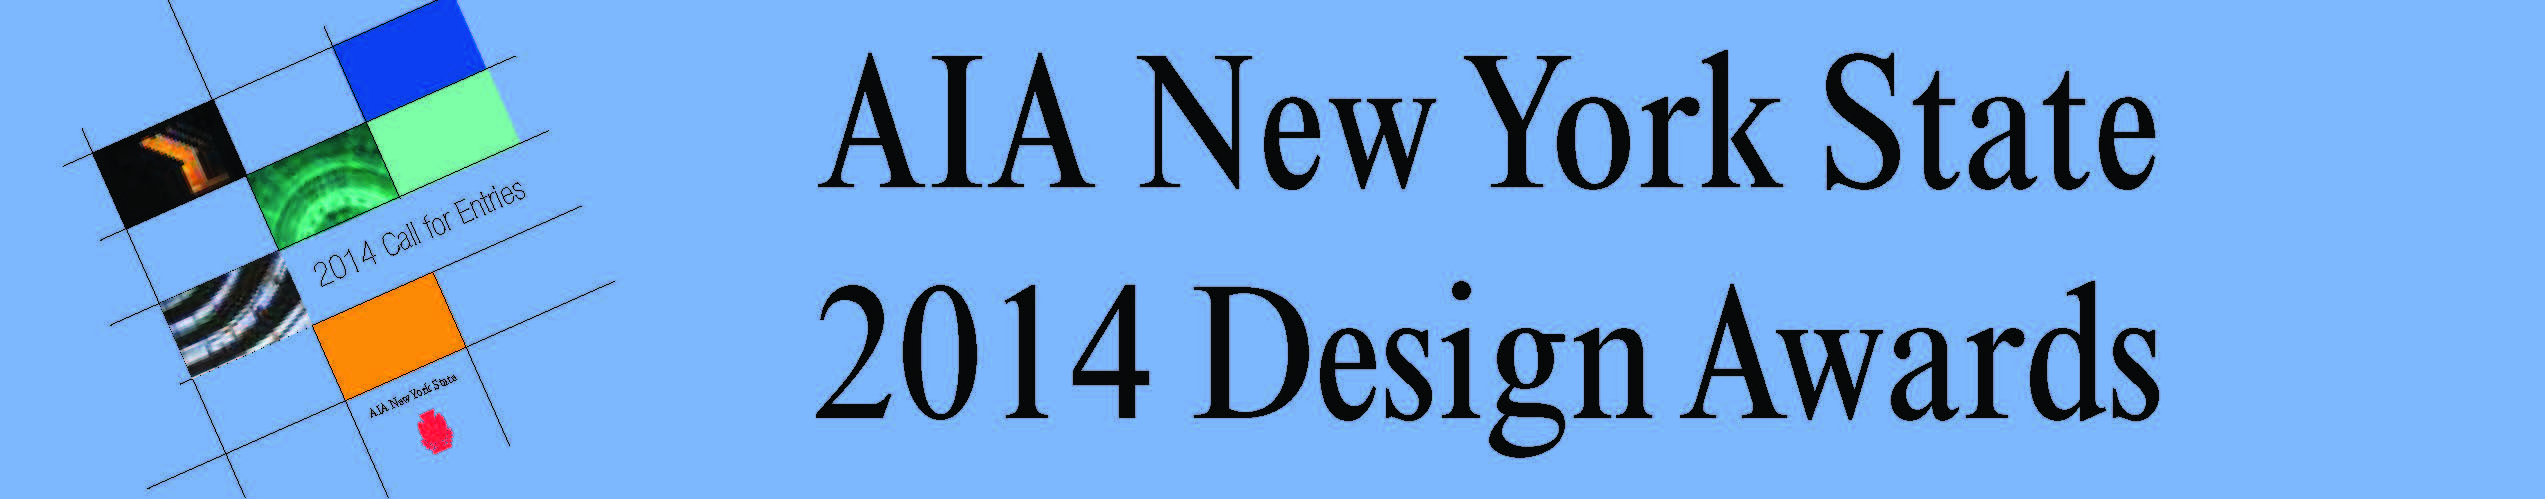 2014 AIANYS Design Awards